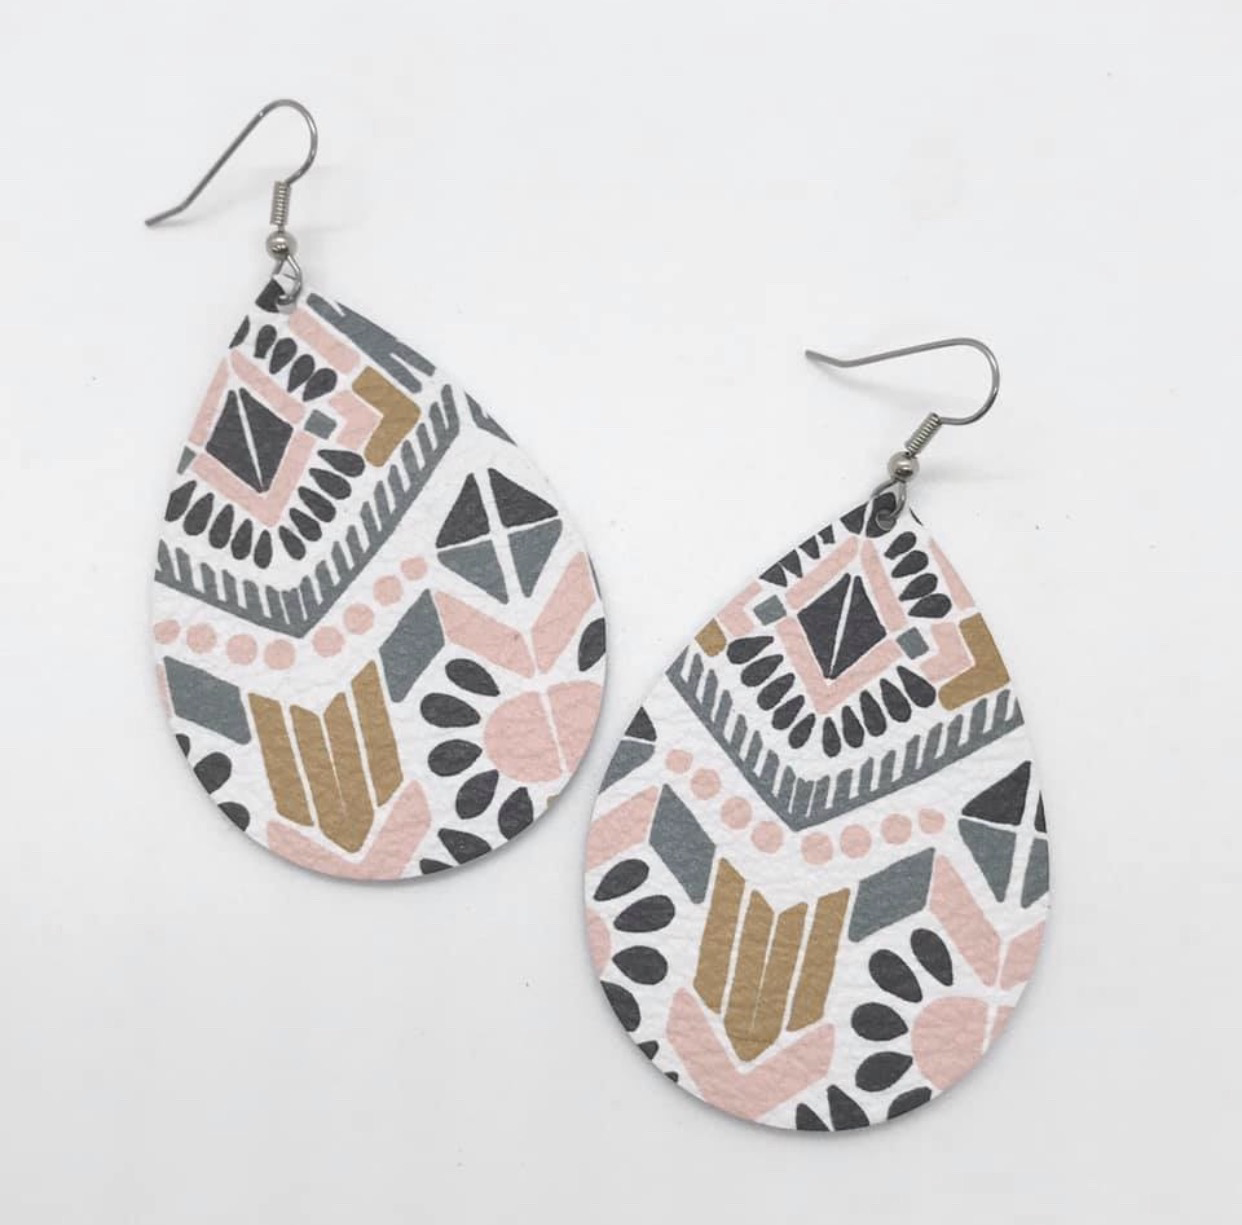 2.5 Inch Teardrop Earrings - Spring Collection (3 Styles) 85029